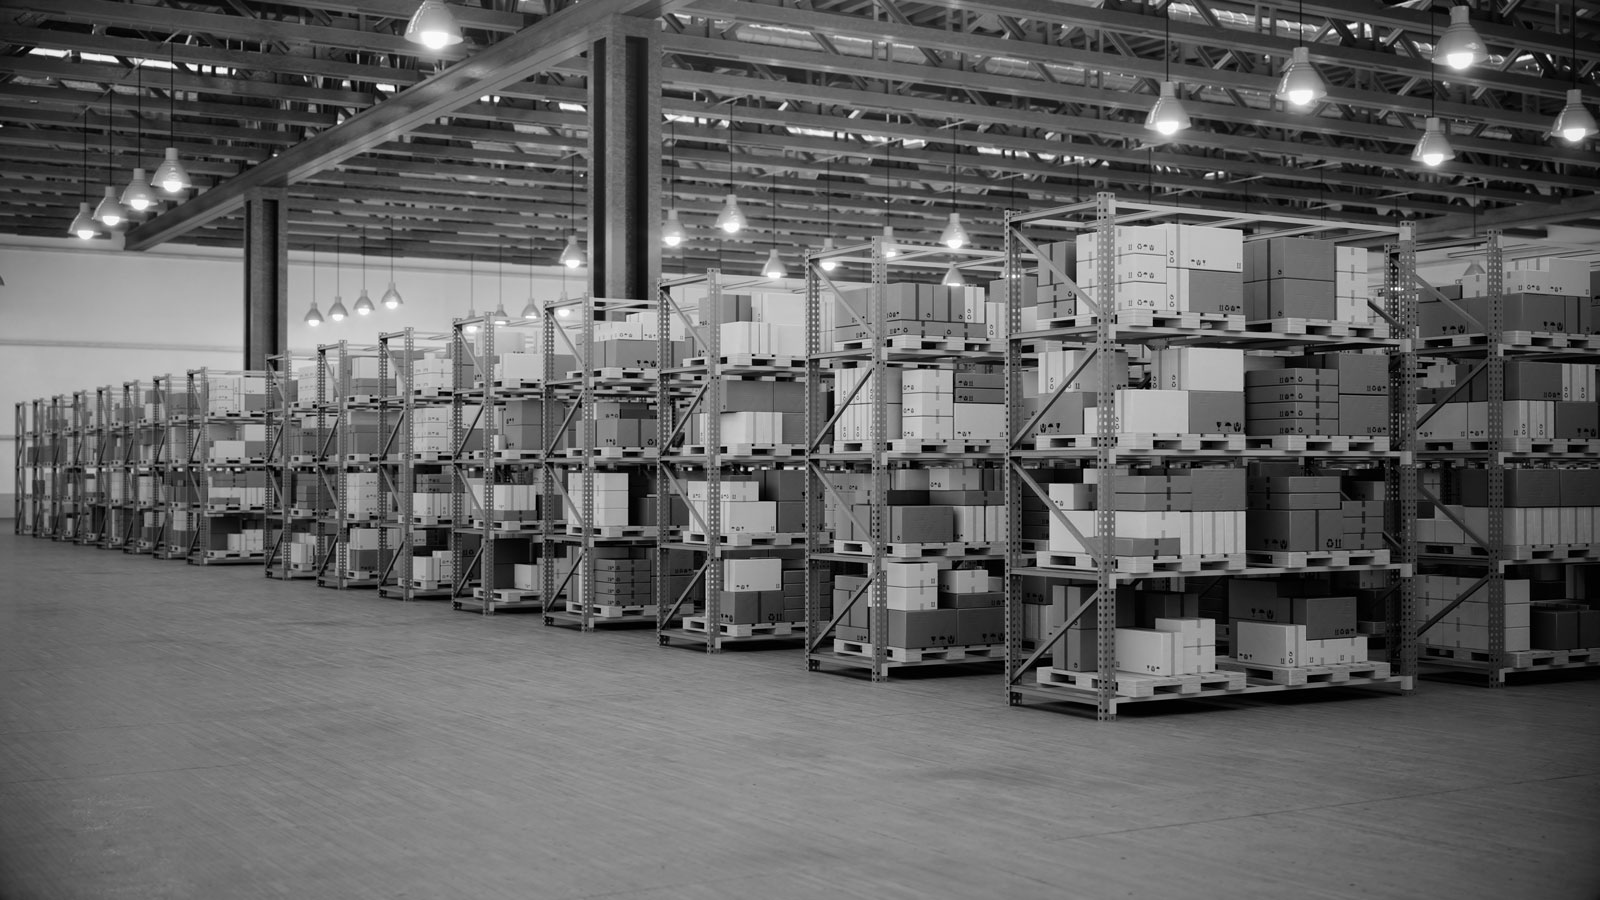 bigstock-Warehouse-With-Cardboard-Boxes-3262709652